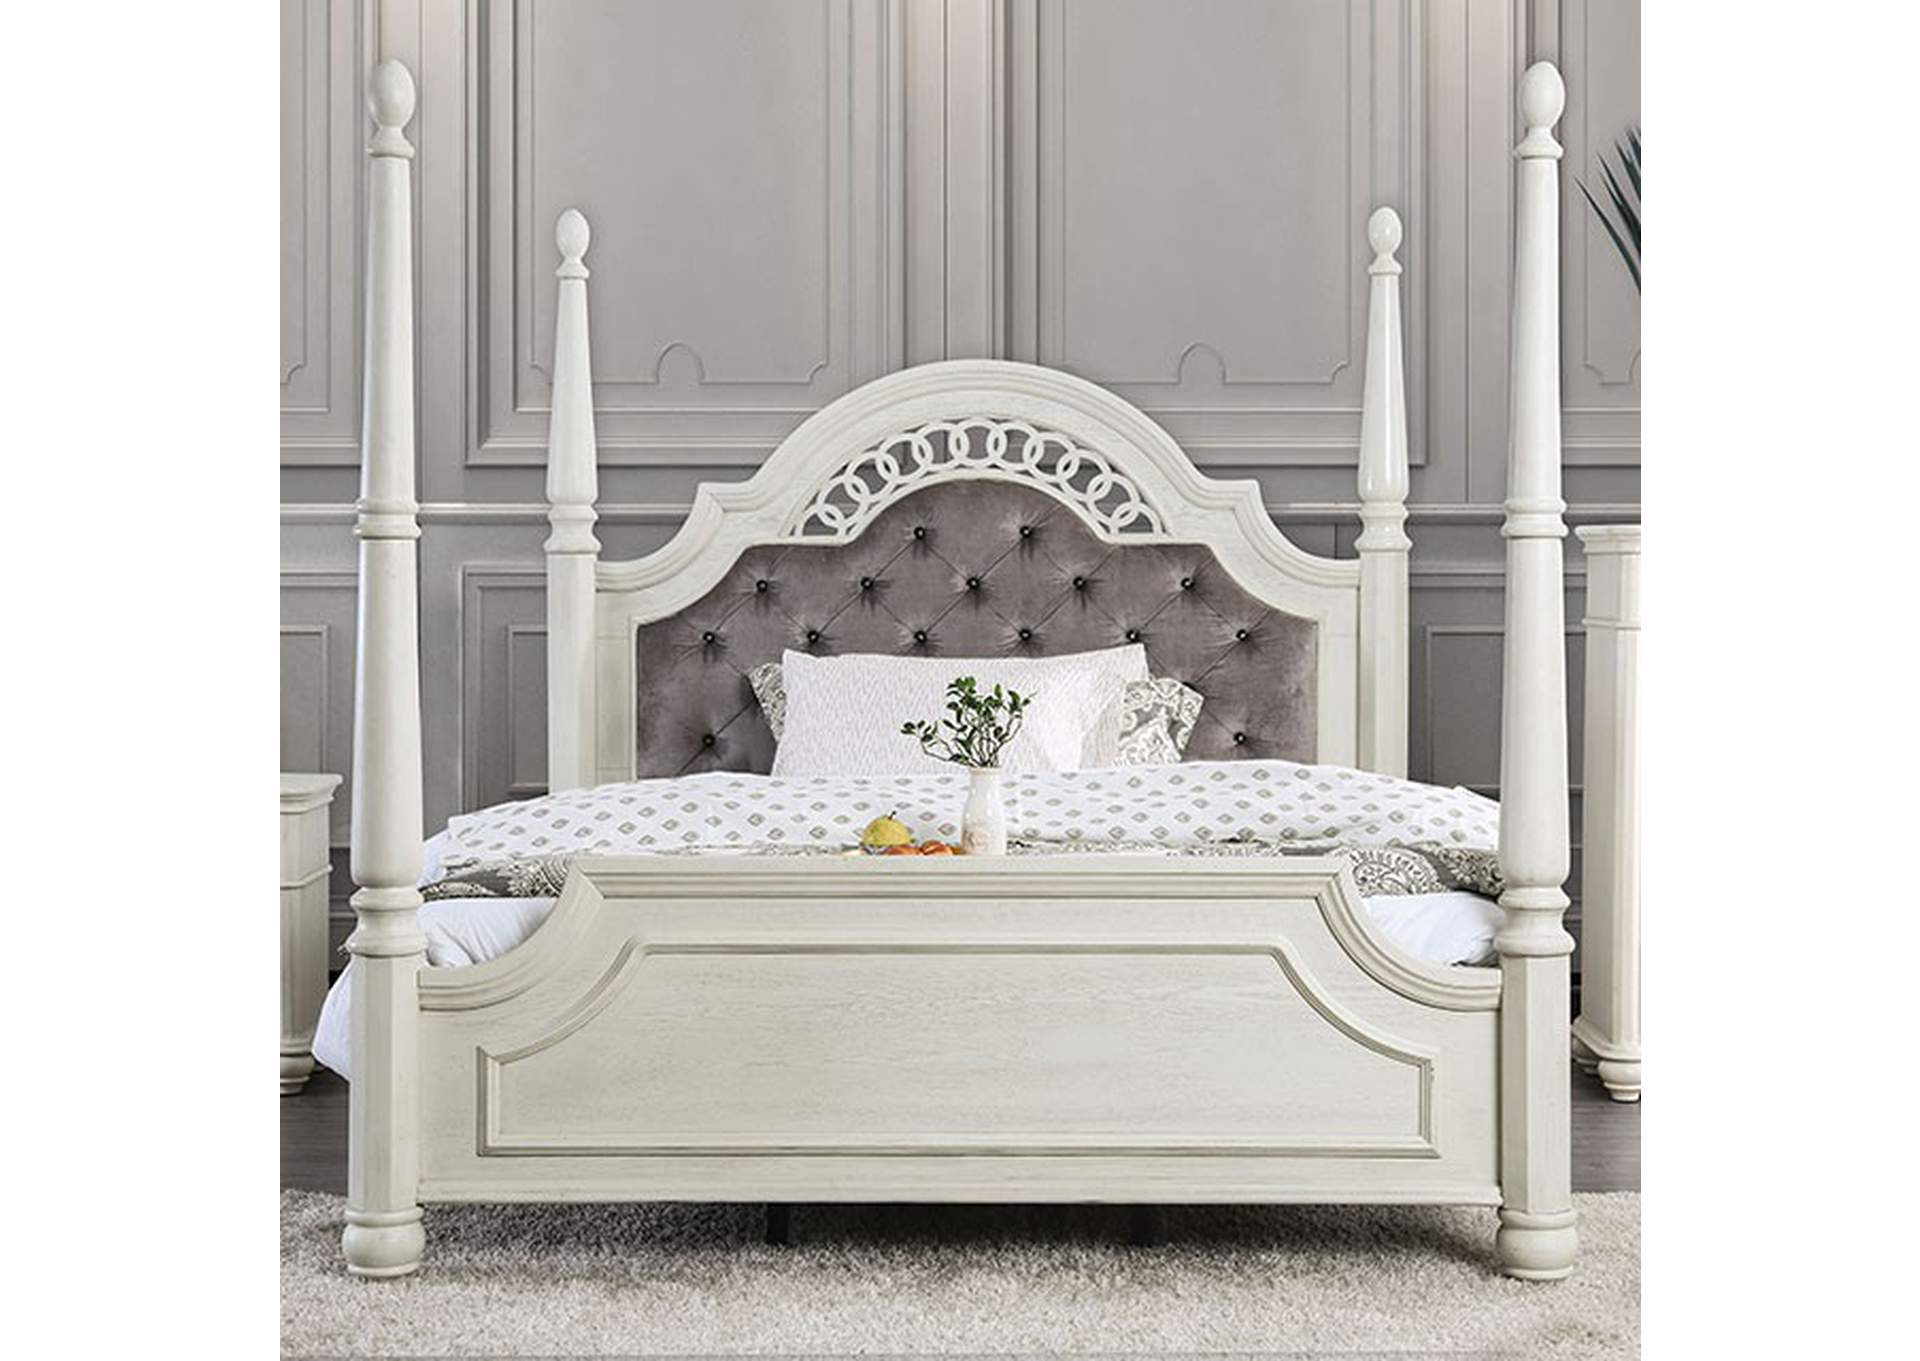 Fantasia White Upholstered Eastern King Poster Panel Bed,Furniture of America